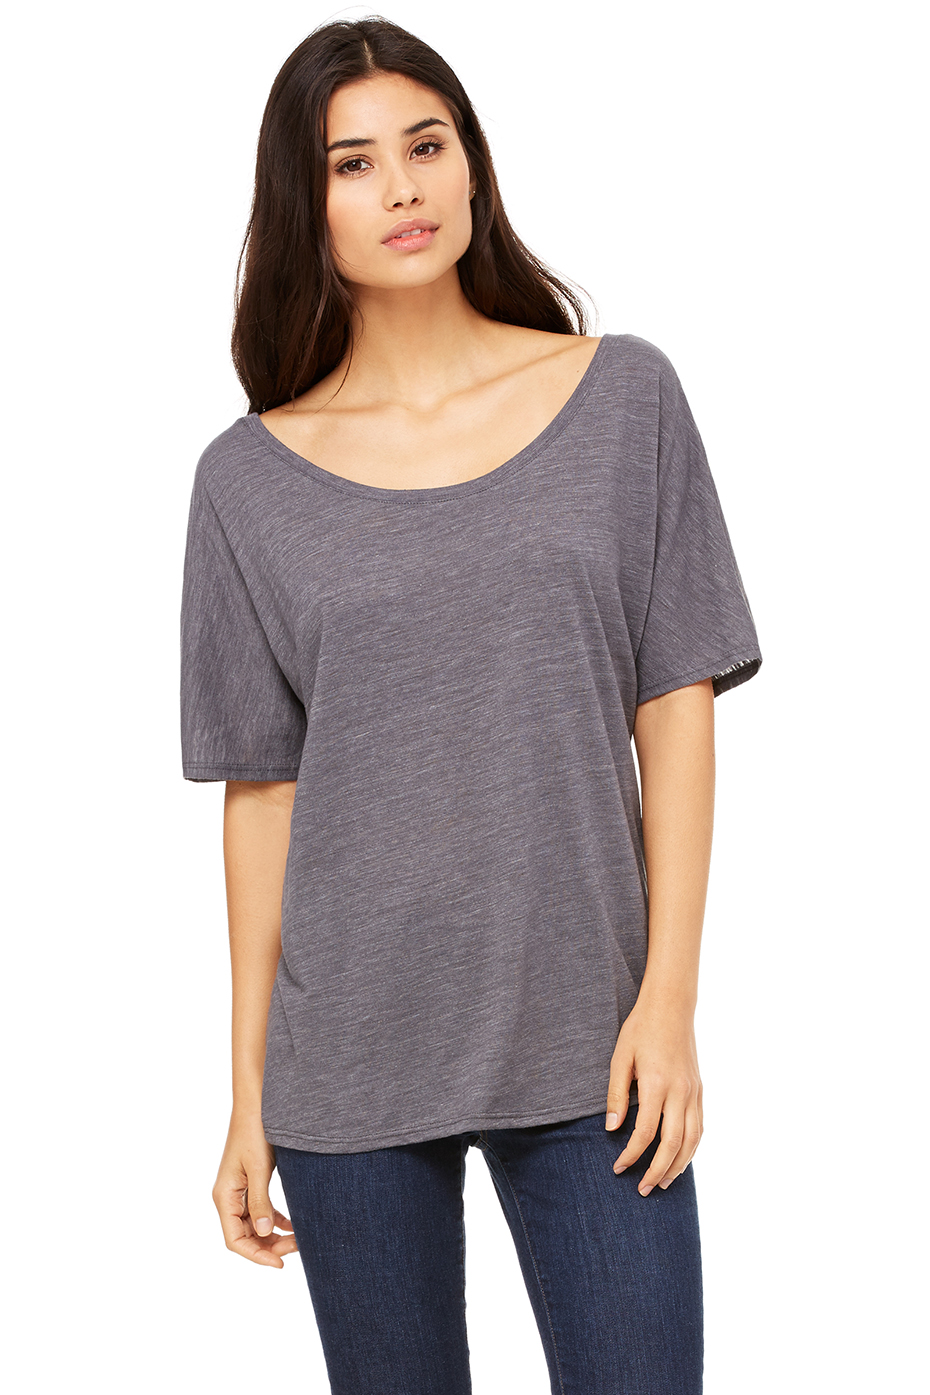 Women 39 s slouchy tee bella canvas for Womens black tee shirt